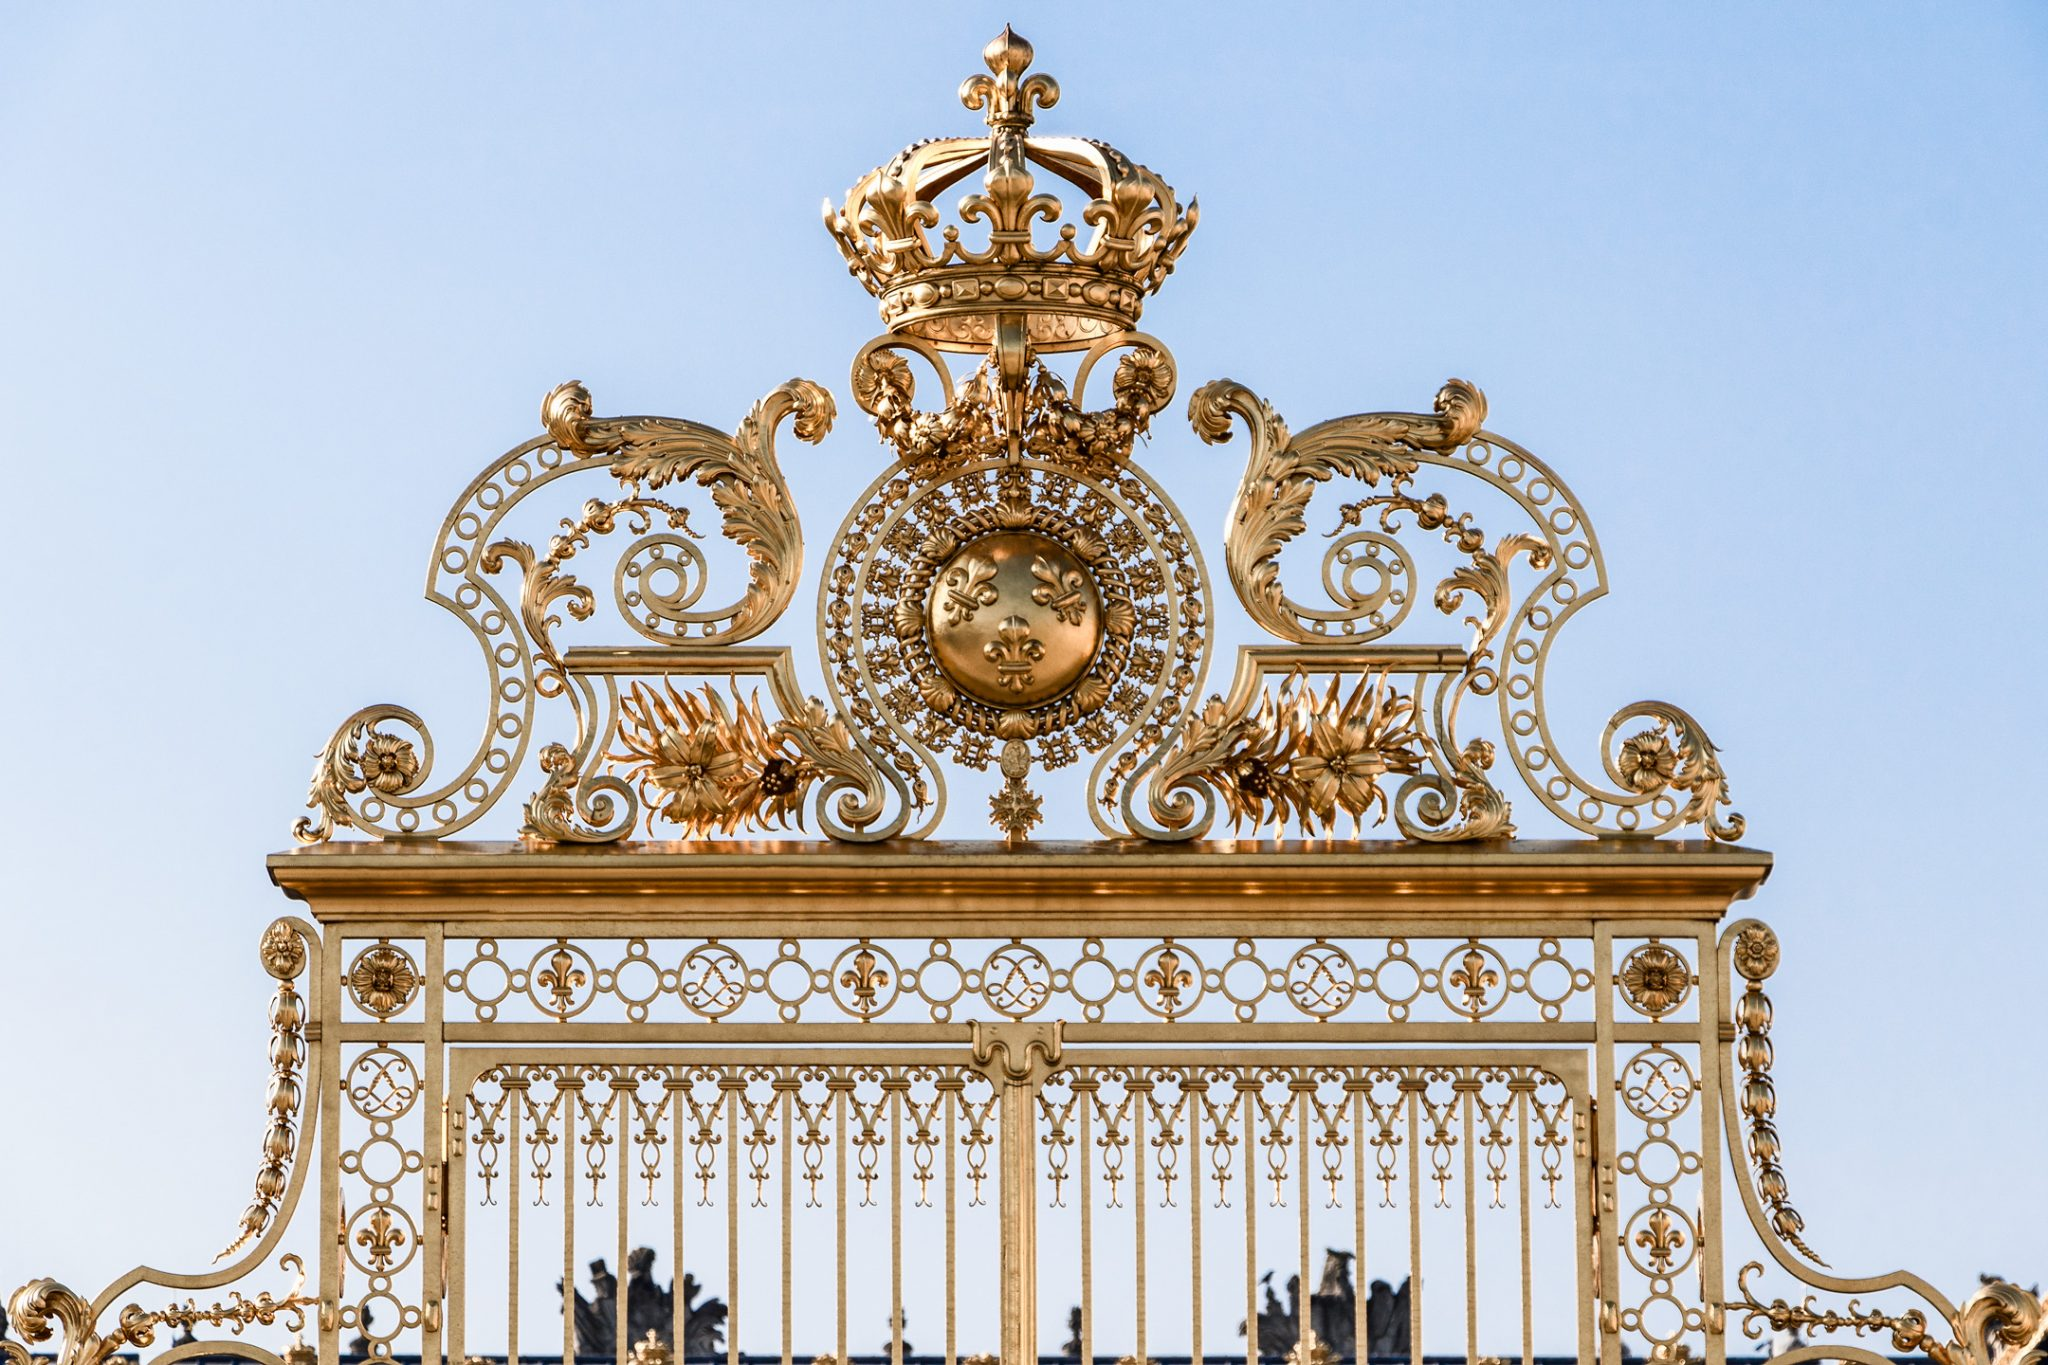 French Photographer Street Photography The King's Golden Gate to the Palace of Versailles